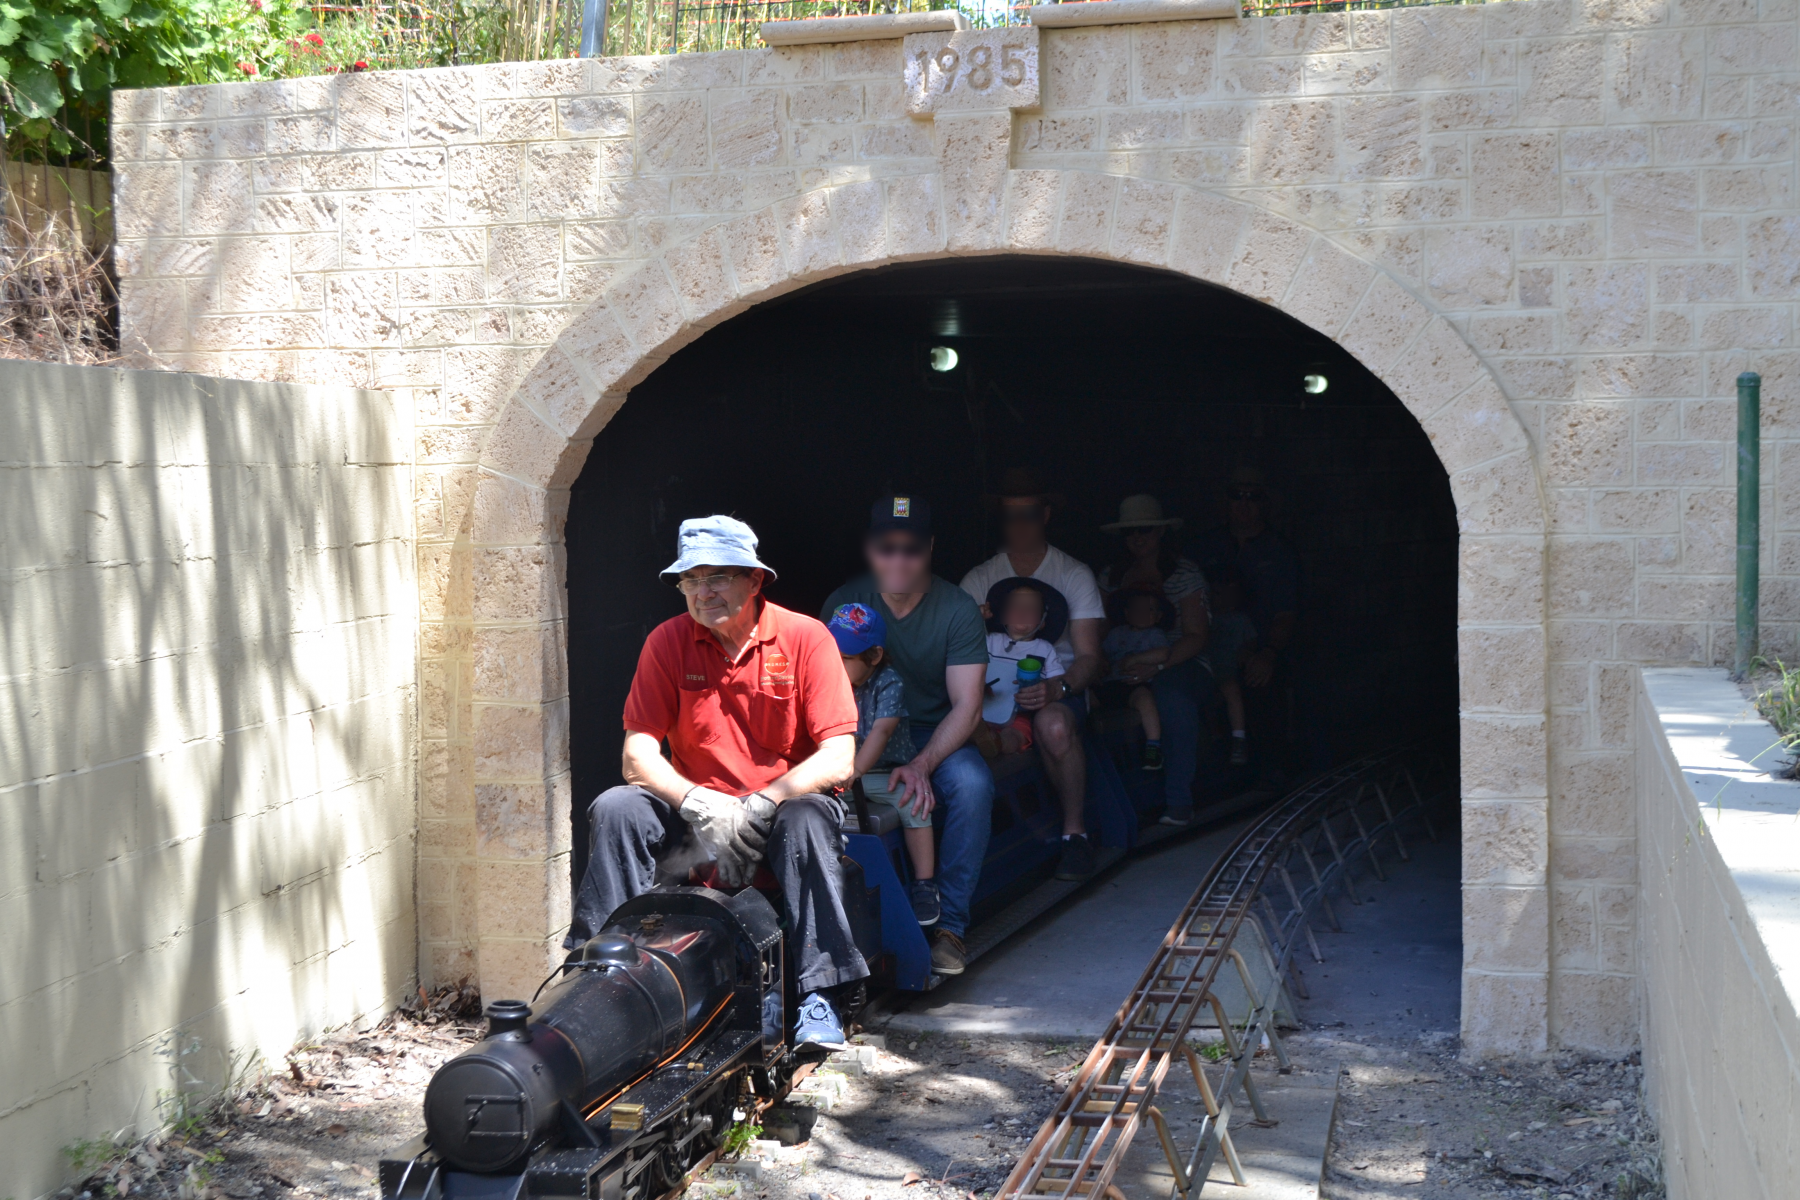 Steve B brings the Black 5 out of the gloom of the tunnel with some smiling punters behind.